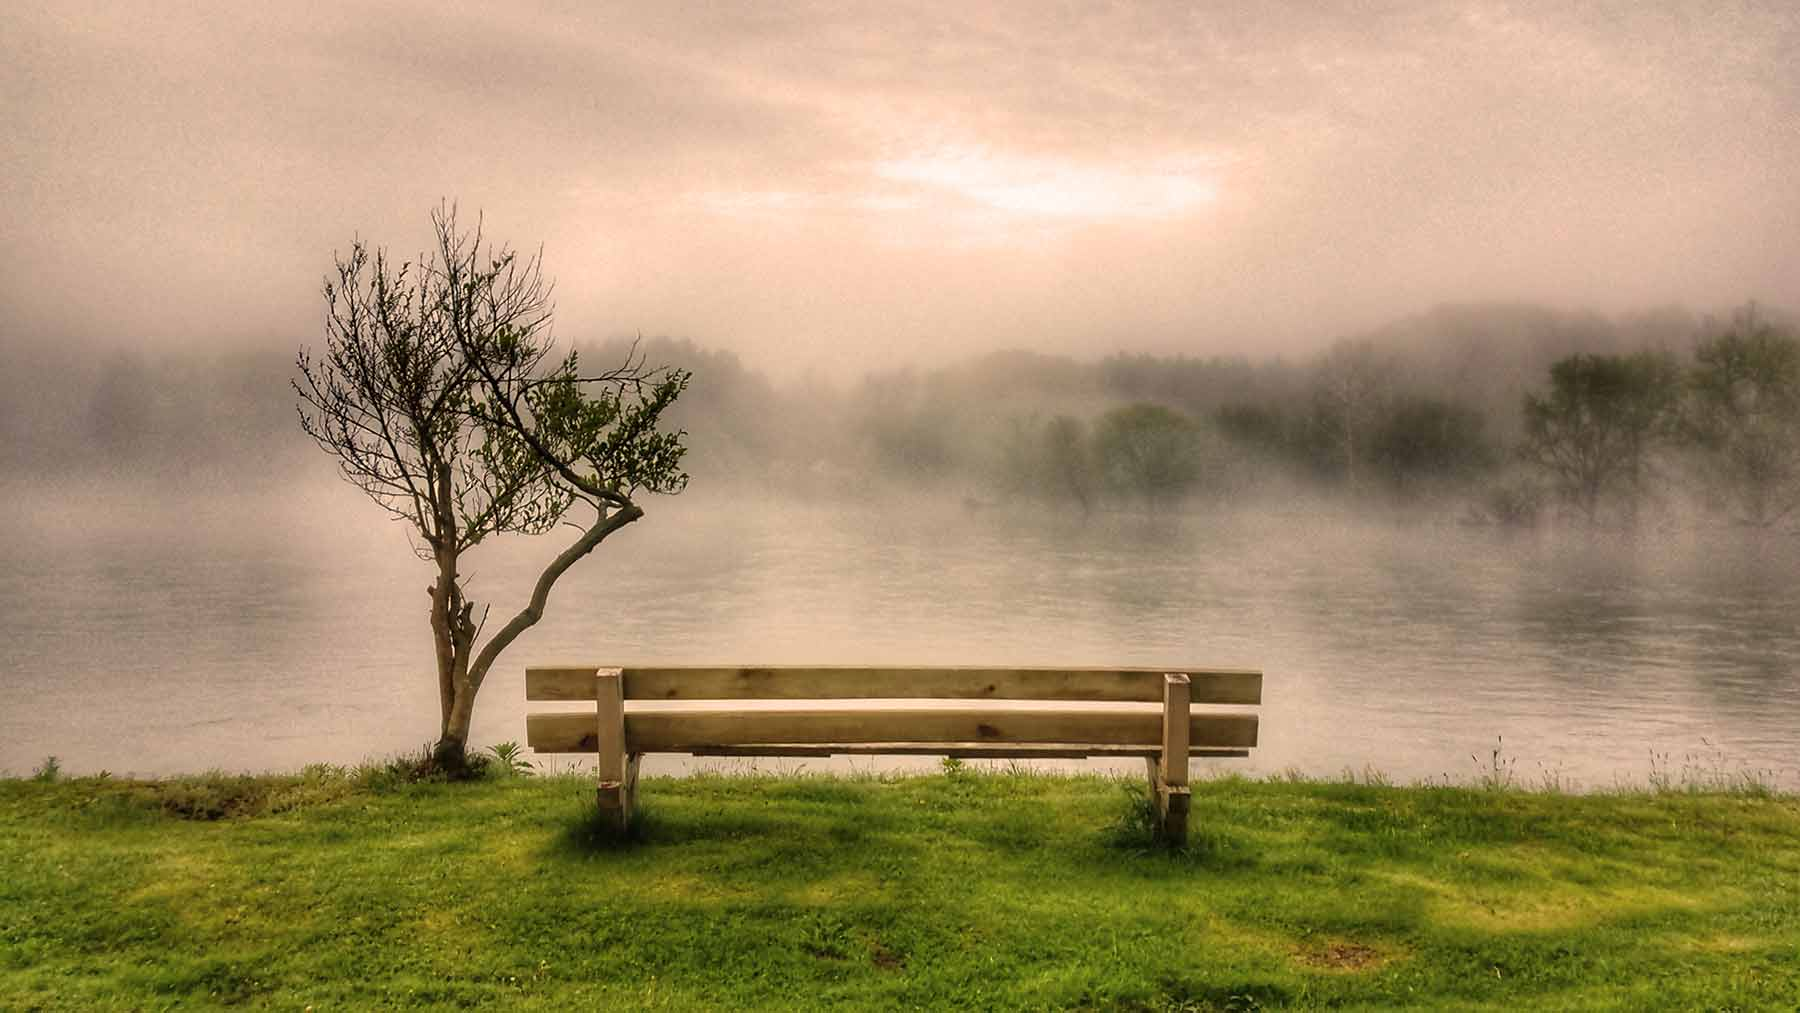 Bench along the Allegheny River in Starbrick, Pa.